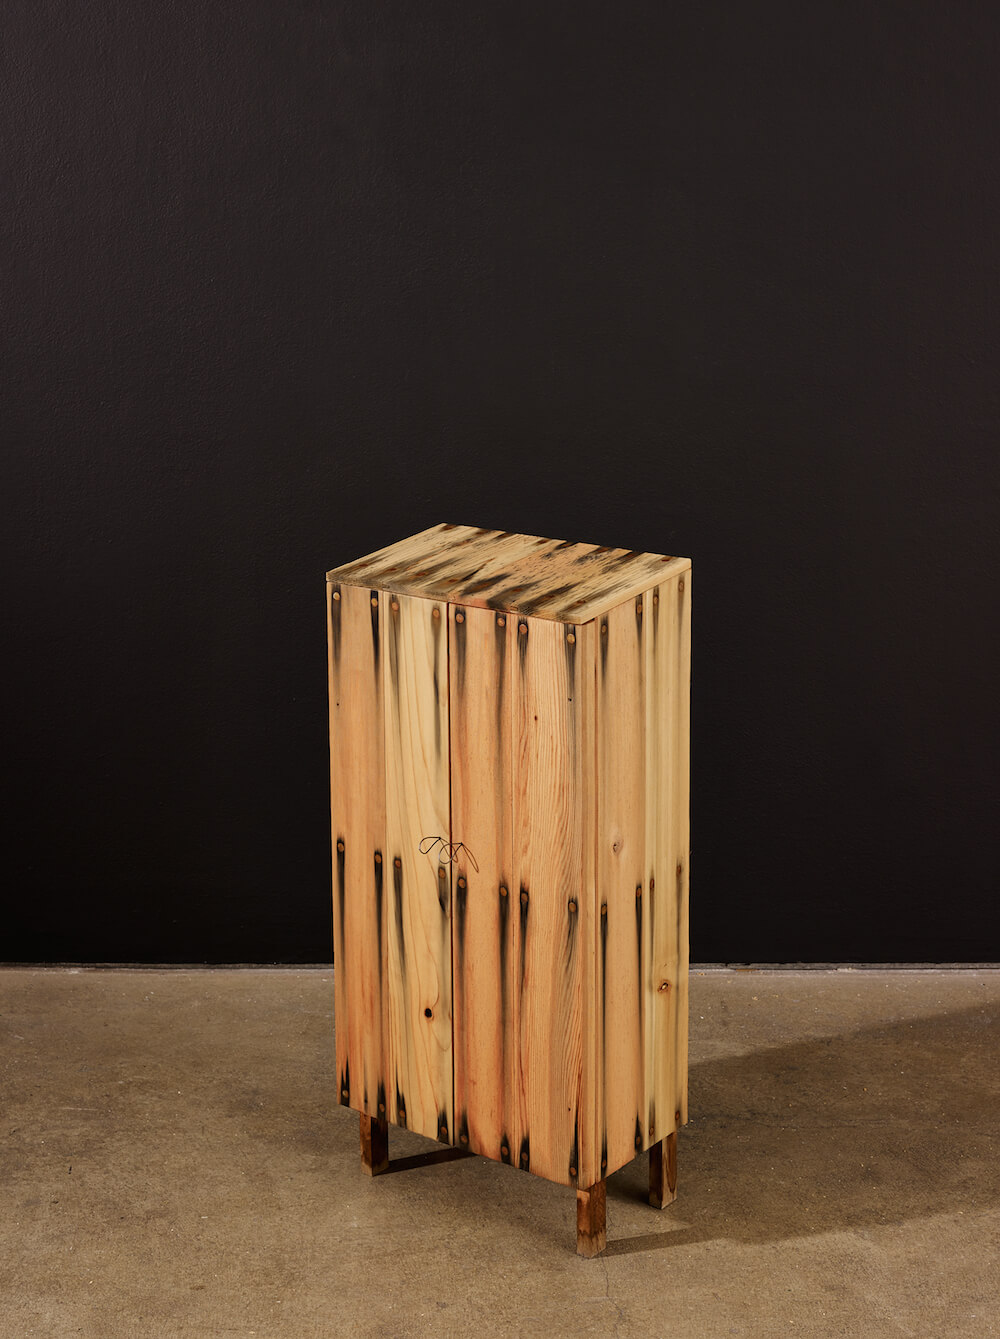 Small Bleed Cabinet 1, 2014. Cedar Wood, steel nails, 81 x 38 x 23 cm. Photo Credit Anna Arca